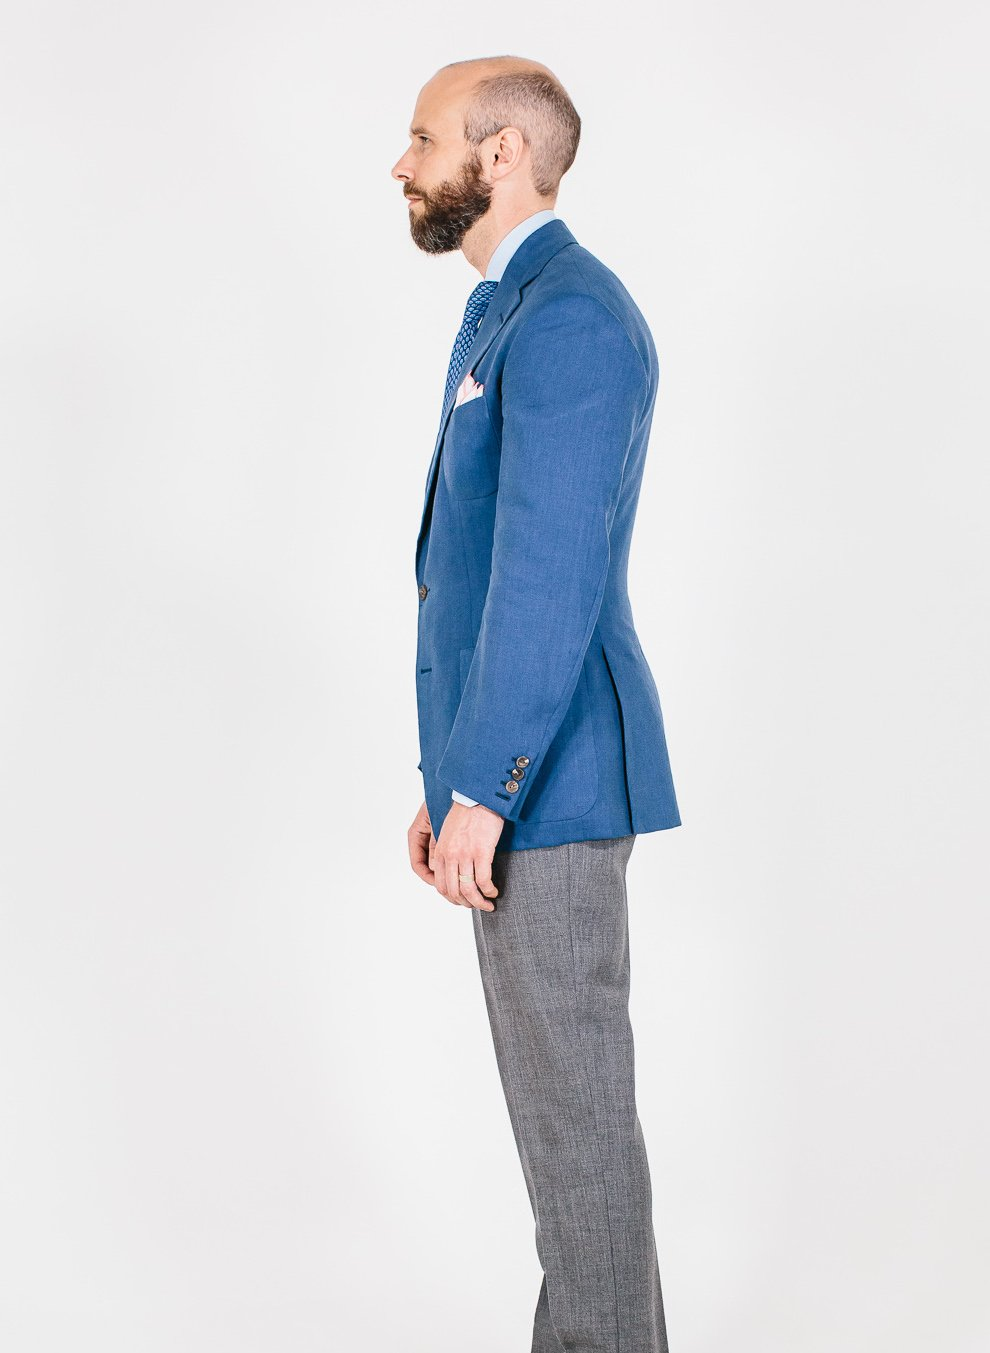 42760dc57e0352 On the subject of comfort, I should highlight that I've found A&S suits to  be the most comfortable of all the ones I've had on Savile Row – a  combination of ...